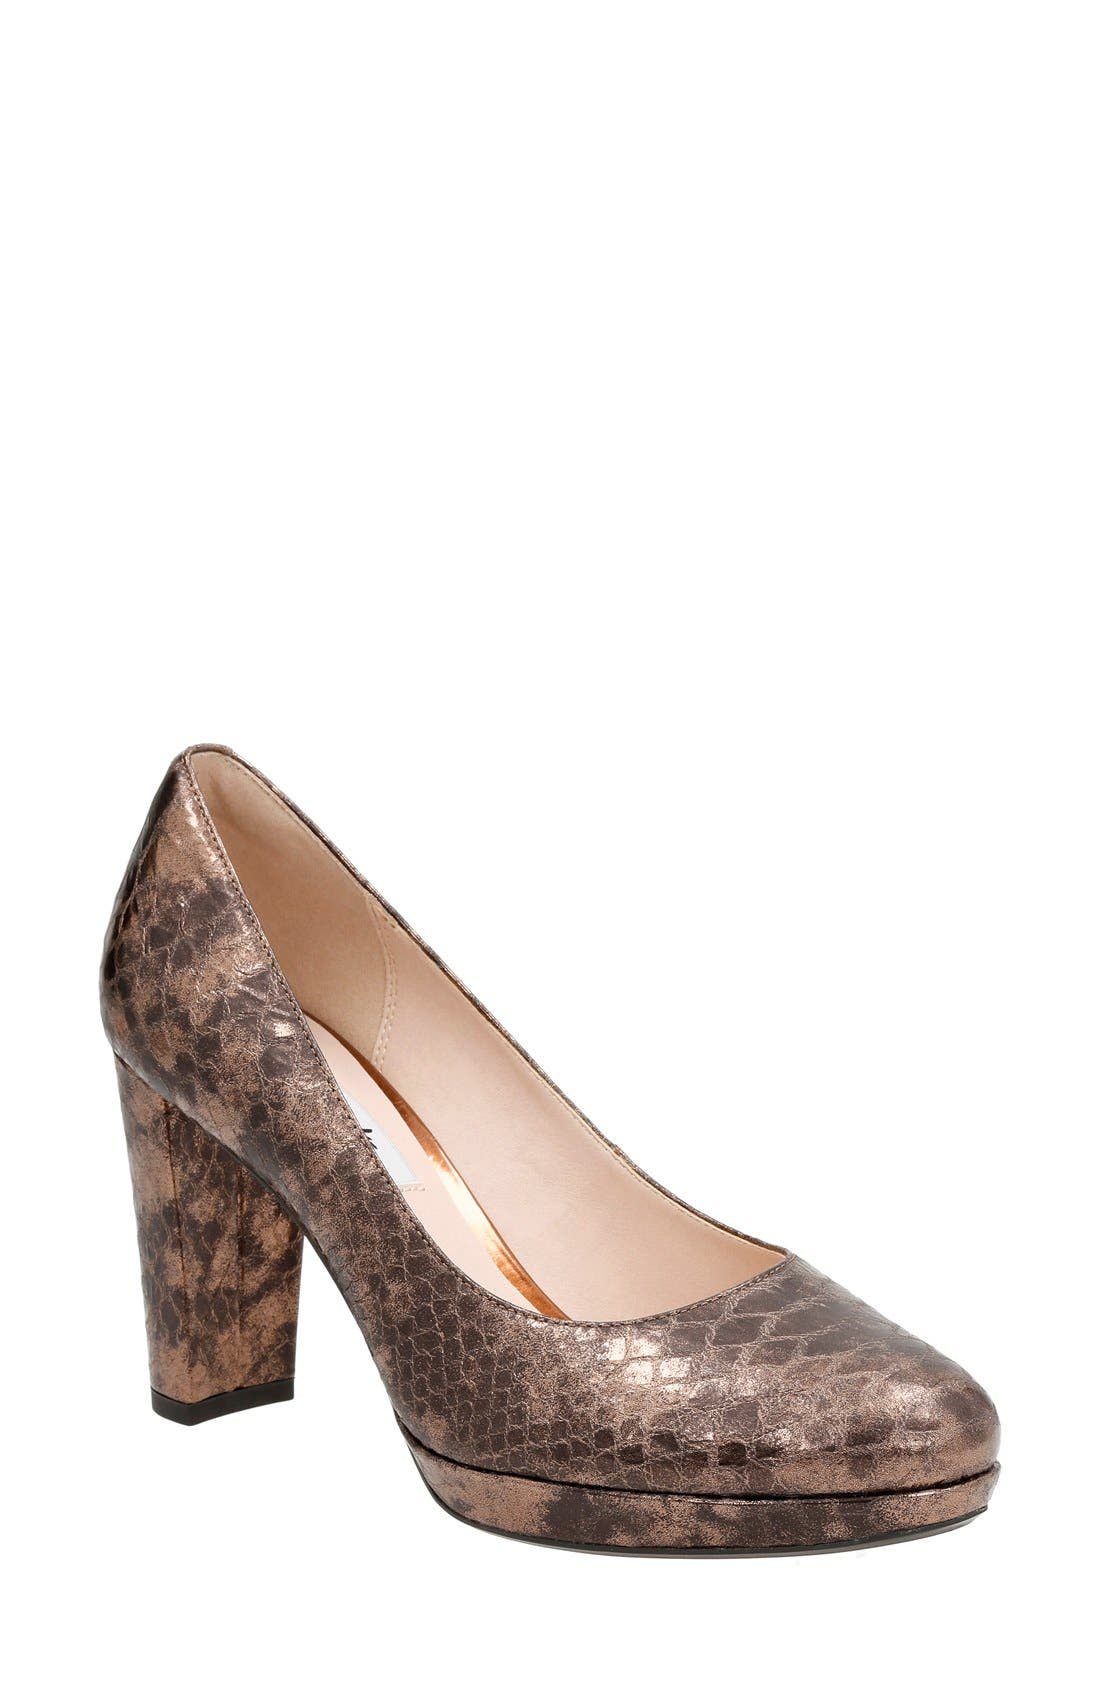 CLARKS<SUP>®</SUP> Kendra Sienna Almond Toe Pump